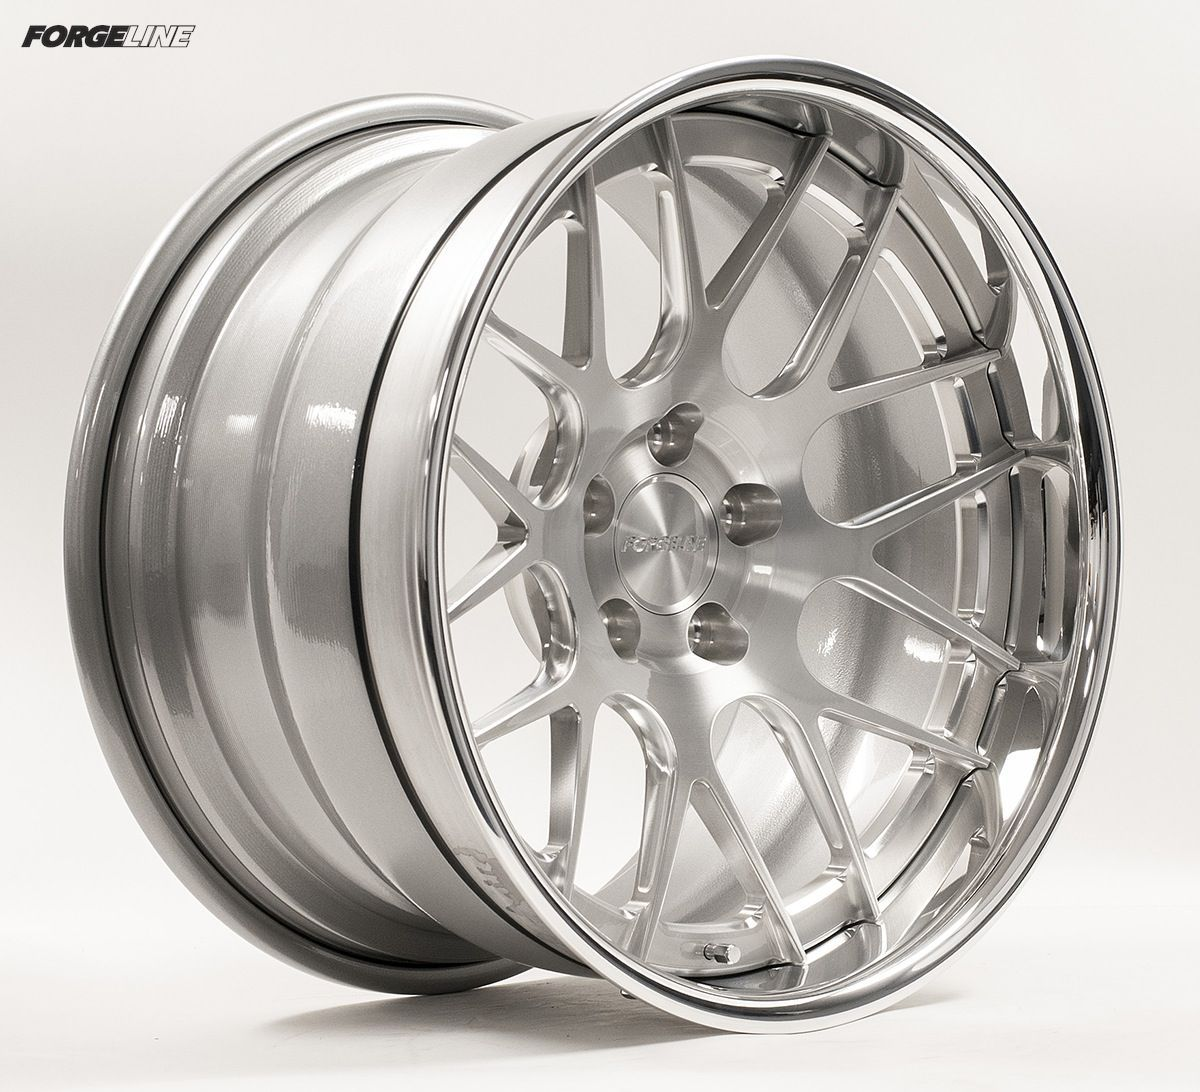 | Forgeline DE3C Concave with Brushed Center and Polished Outer